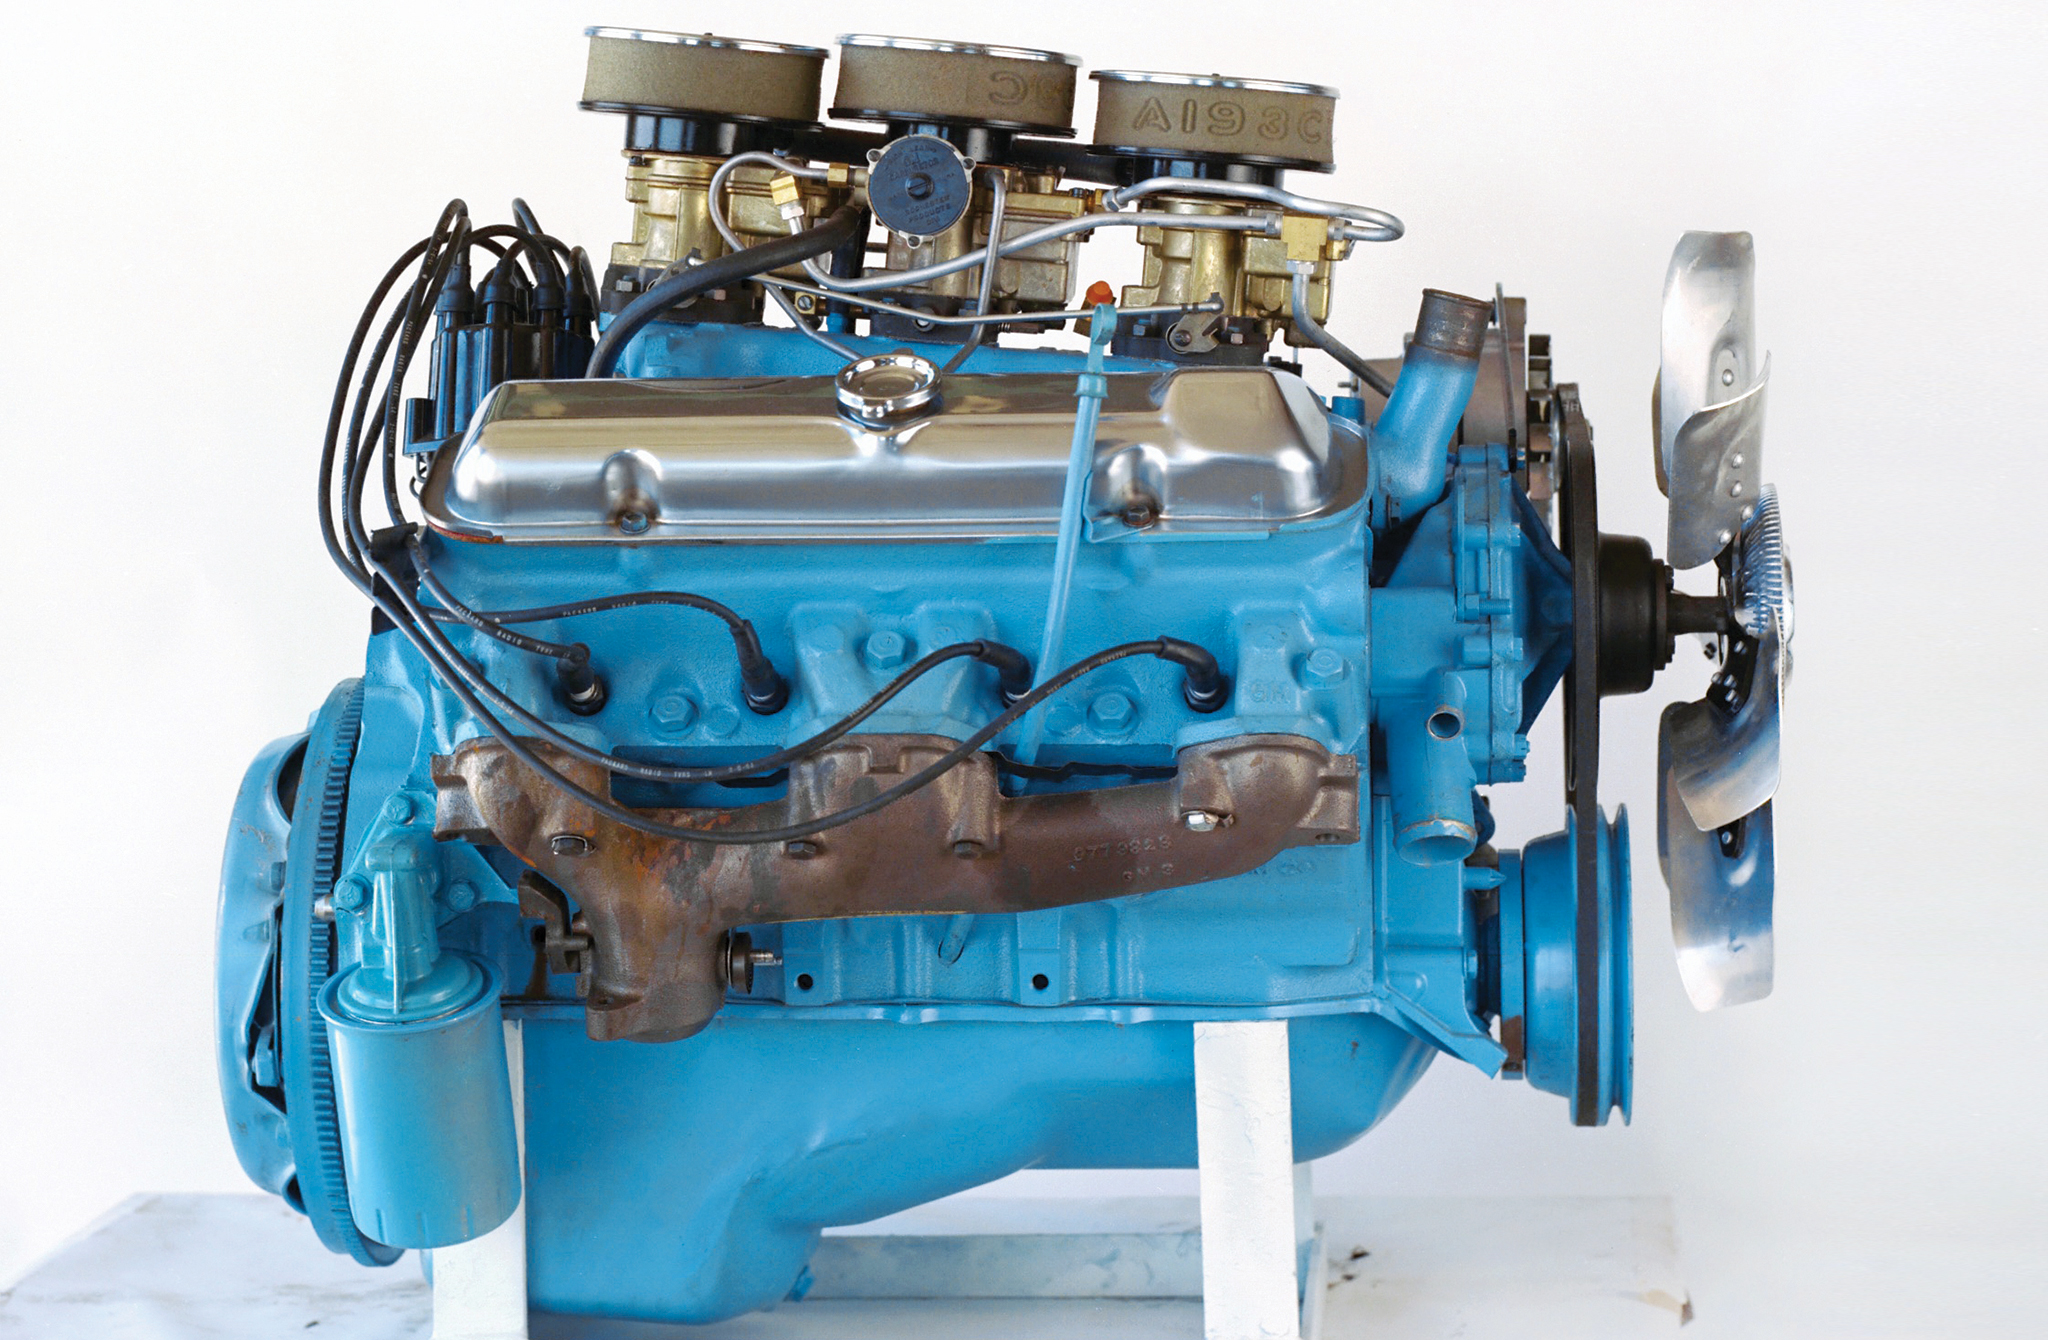 New cylinder heads and a camshaft upgrade in 1965 moved the top-dog 389 Tri-Power up to 360hp at 5,200 rpm, though torque dipped slightly, dropping to 424 lb-ft at 3,600 rpm.